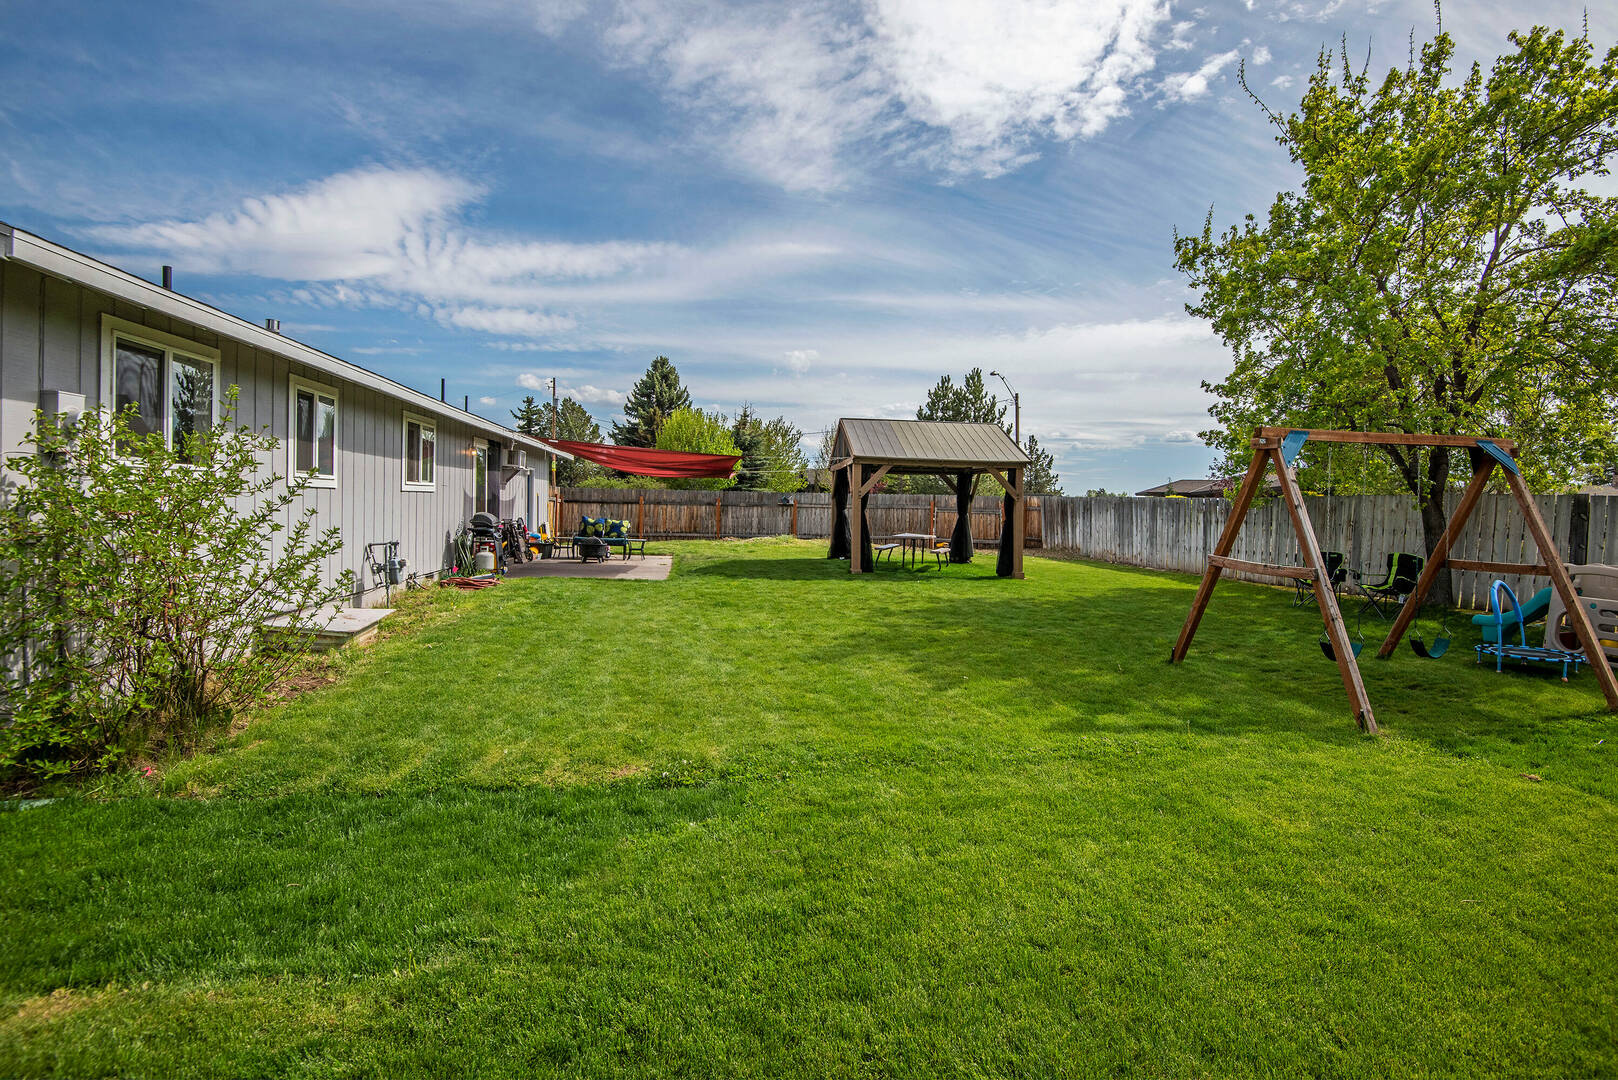 2027 NW 11th St. Redmond, OR 97756